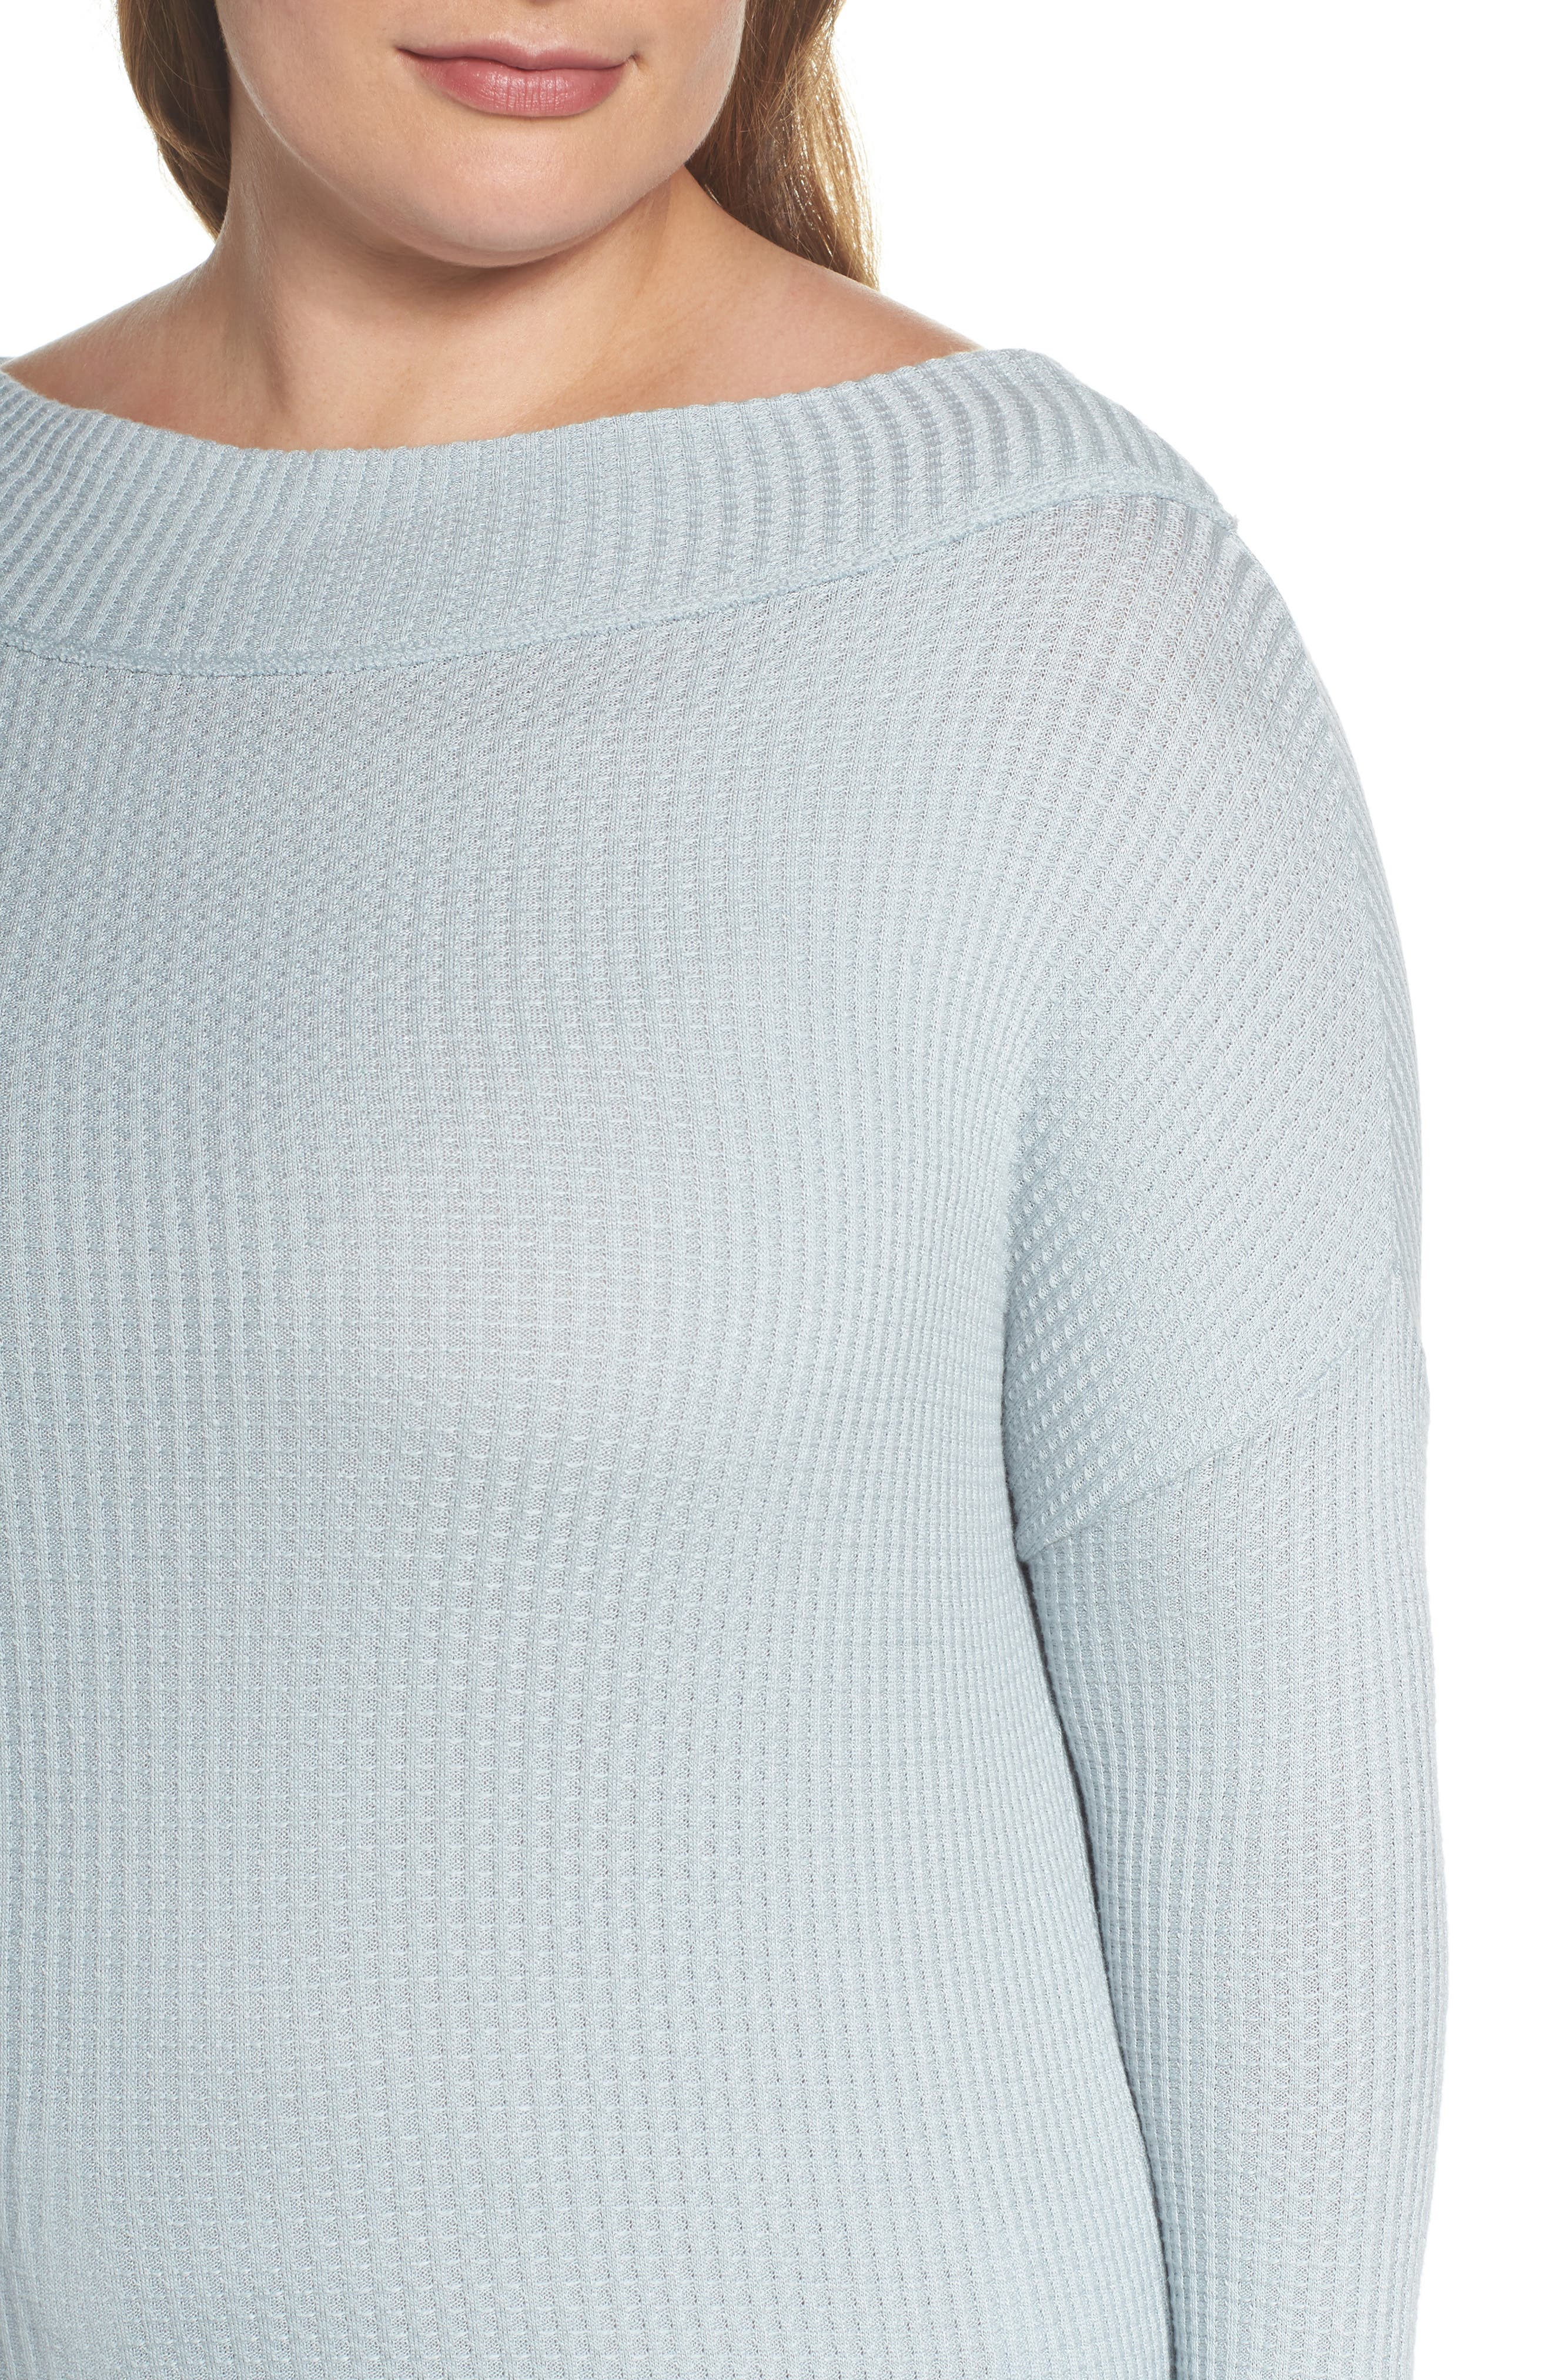 Waffle Thermal Top,                             Alternate thumbnail 4, color,                             430